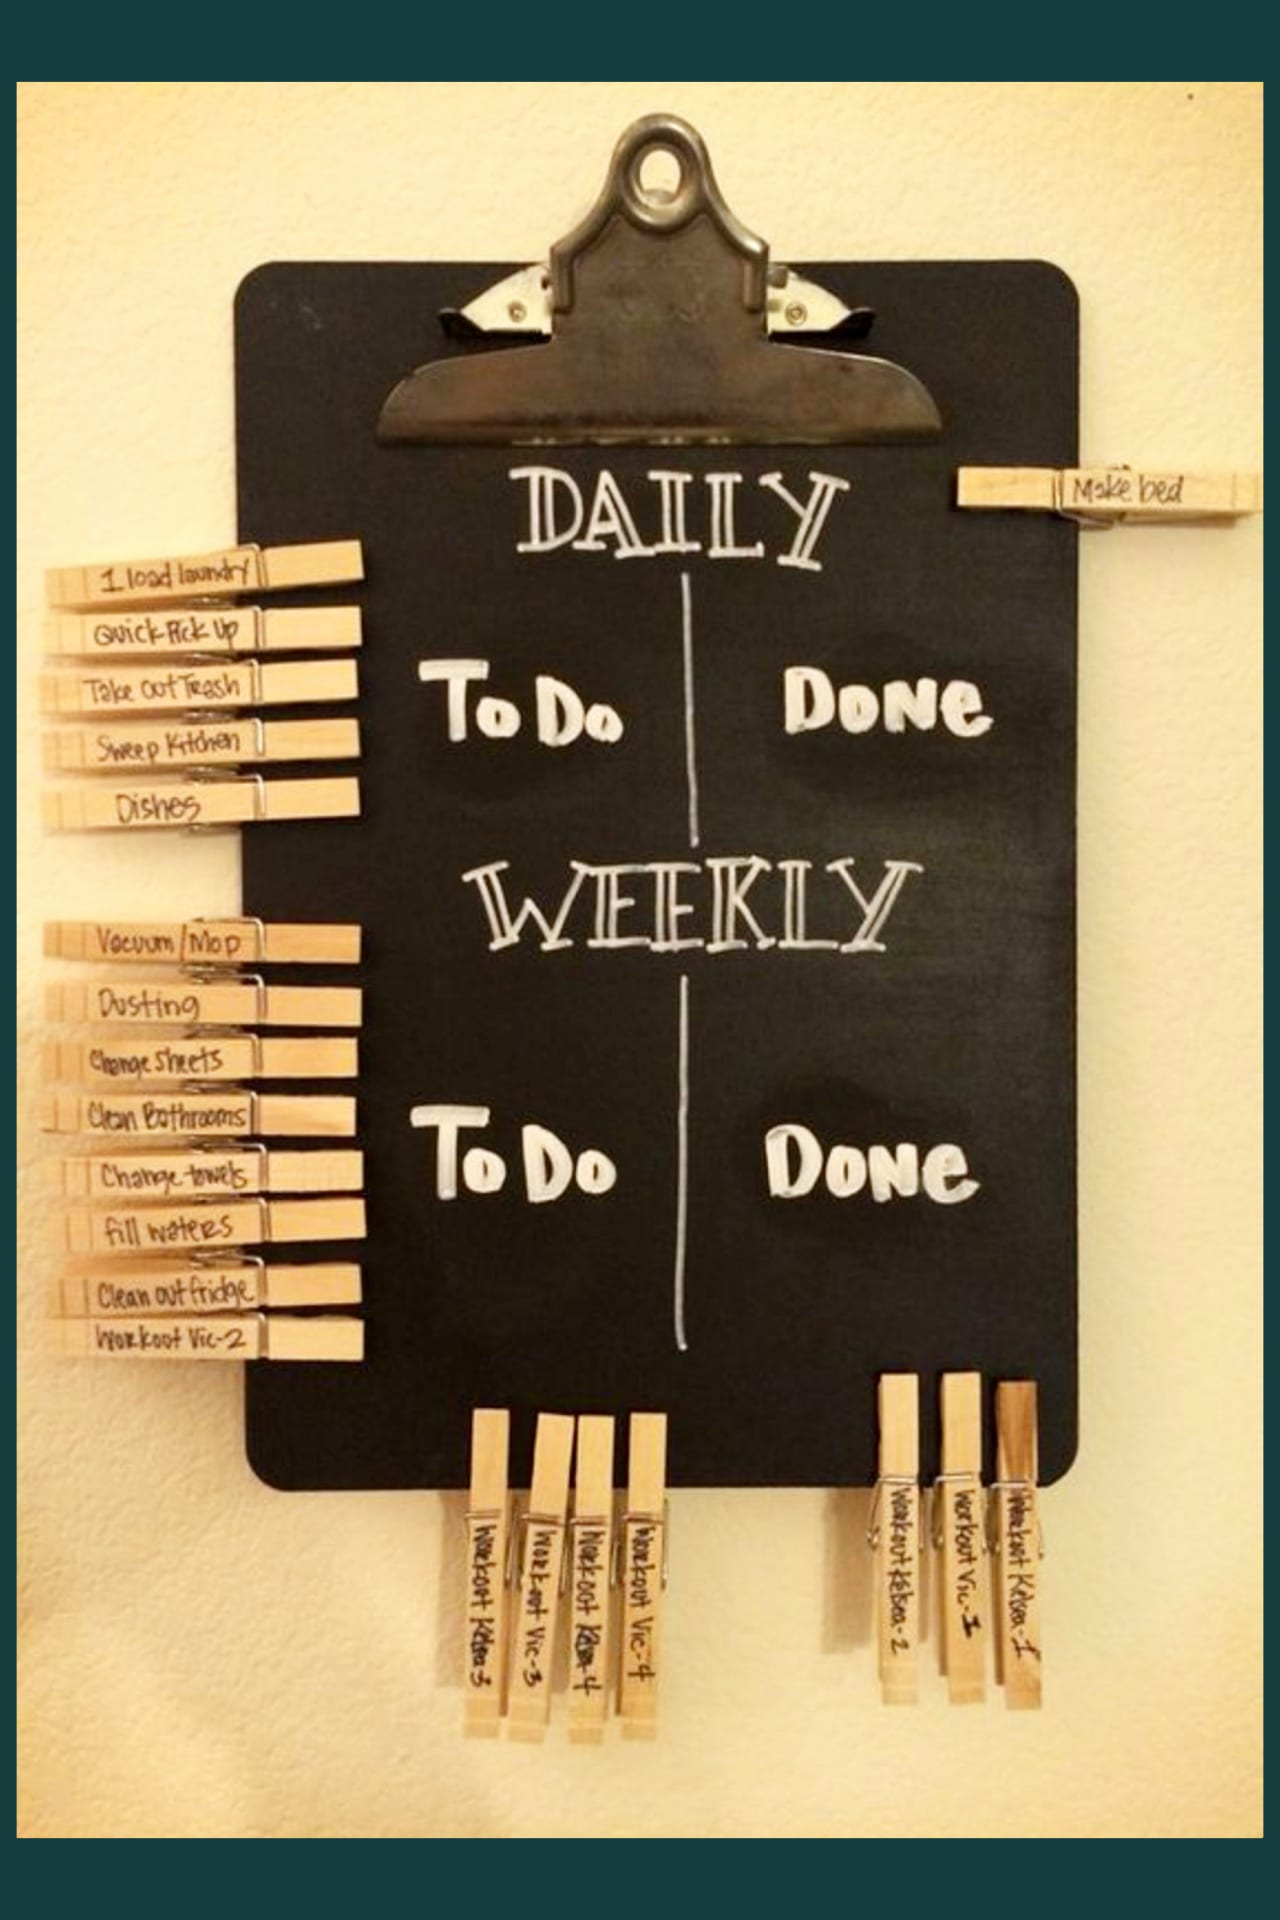 Daily chores to keep house clean - Organize with household items, dollar tree items and everyday objects - kids chore boards and chore charts